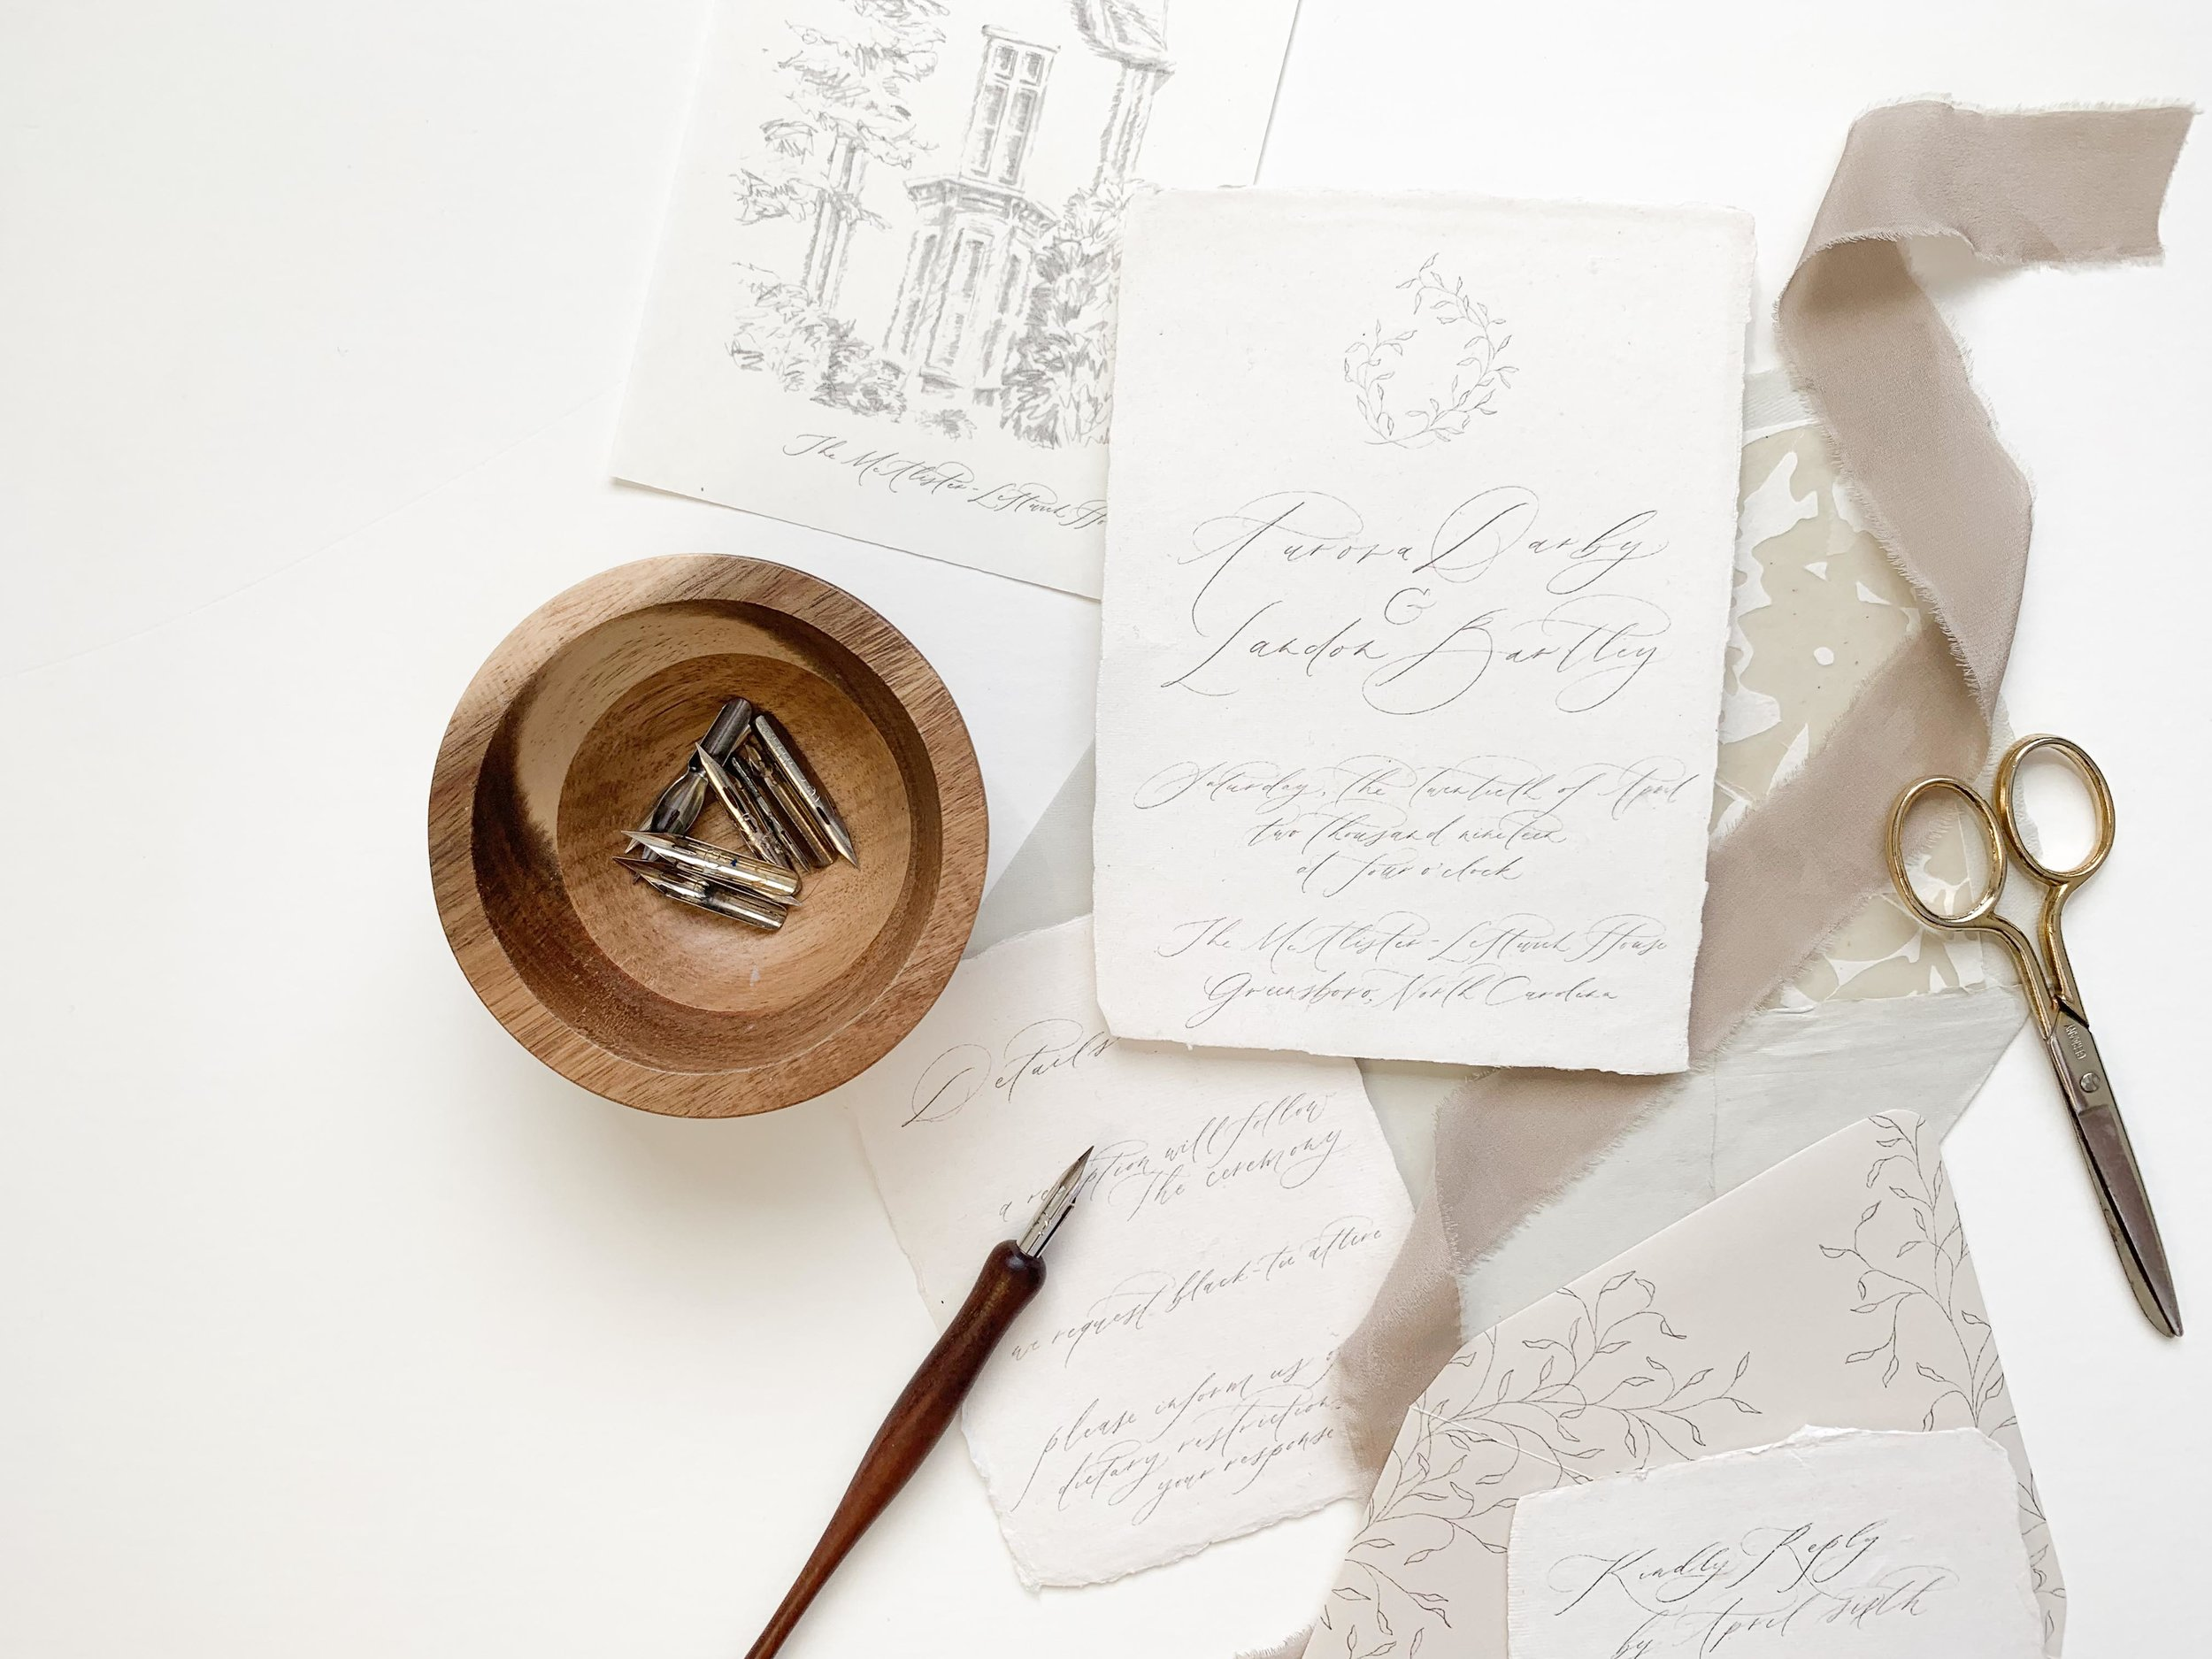 Best props and materials for photographing wedding invitations and other flat lays. Flat lay styling tips and tricks for photographers, planners, stylists, and invitation designers!